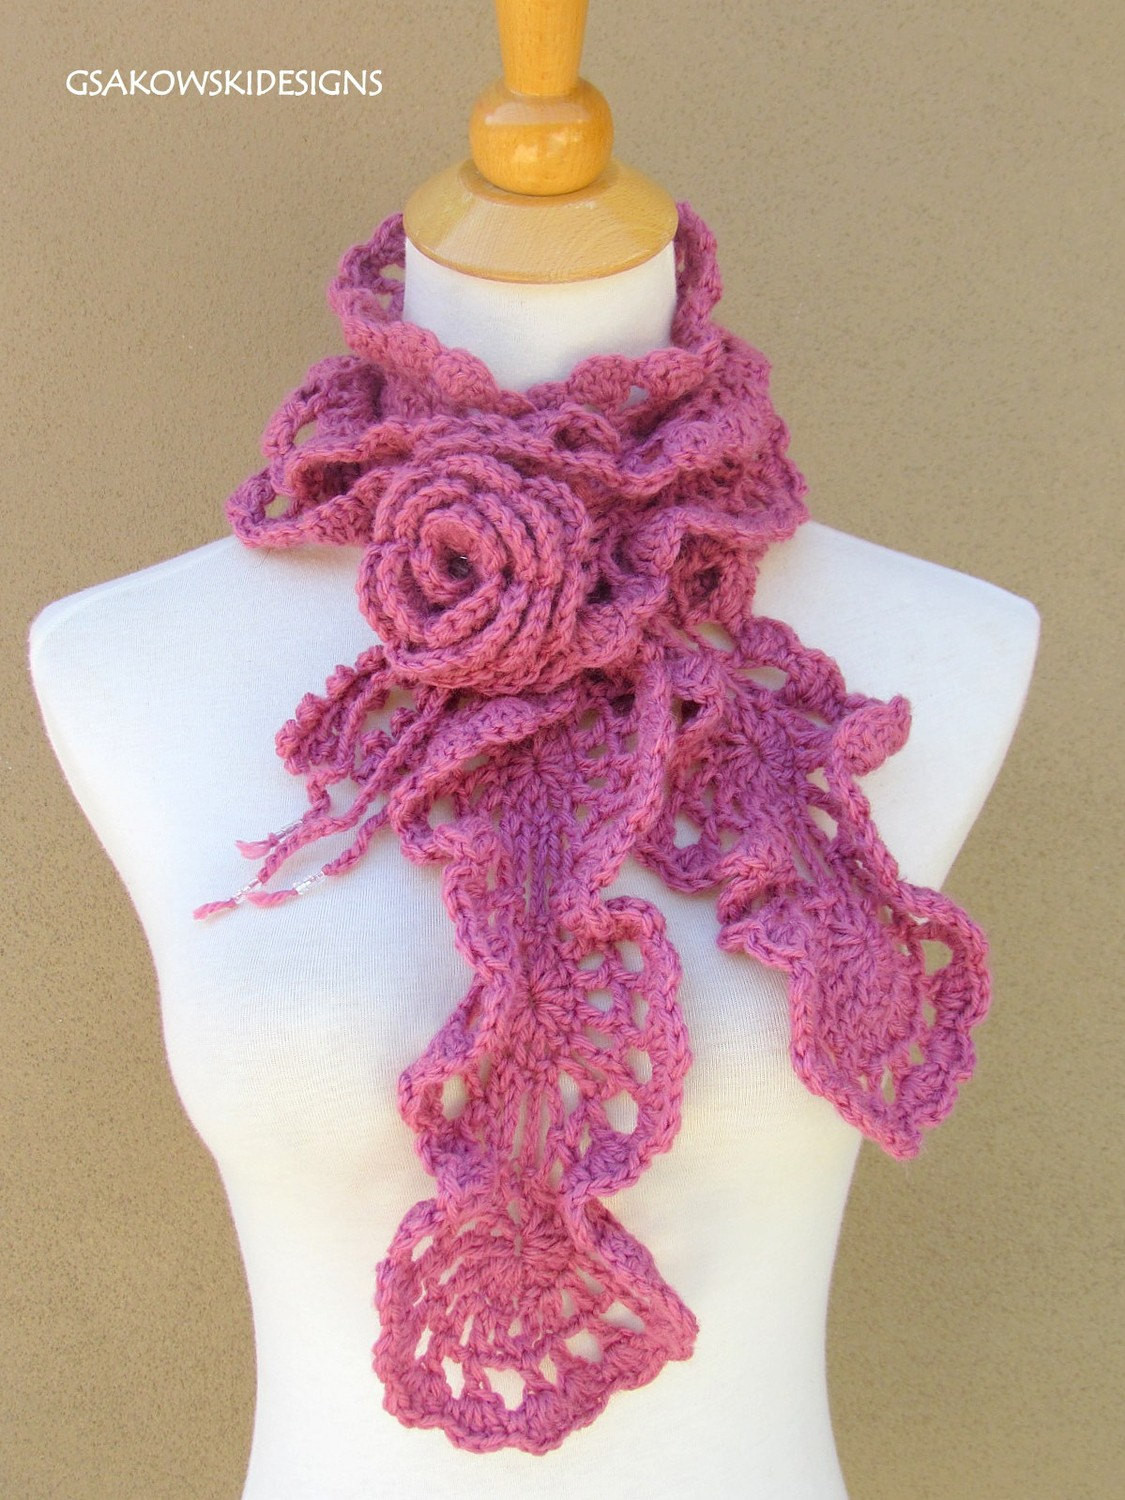 Lovely Crochet Free Pattern Romantic Scarf Crochet — Learn How Crochet Ruffle Scarf Of Inspirational Firehawke Hooks and Needles Free Pattern Ruffle Scarf Crochet Ruffle Scarf